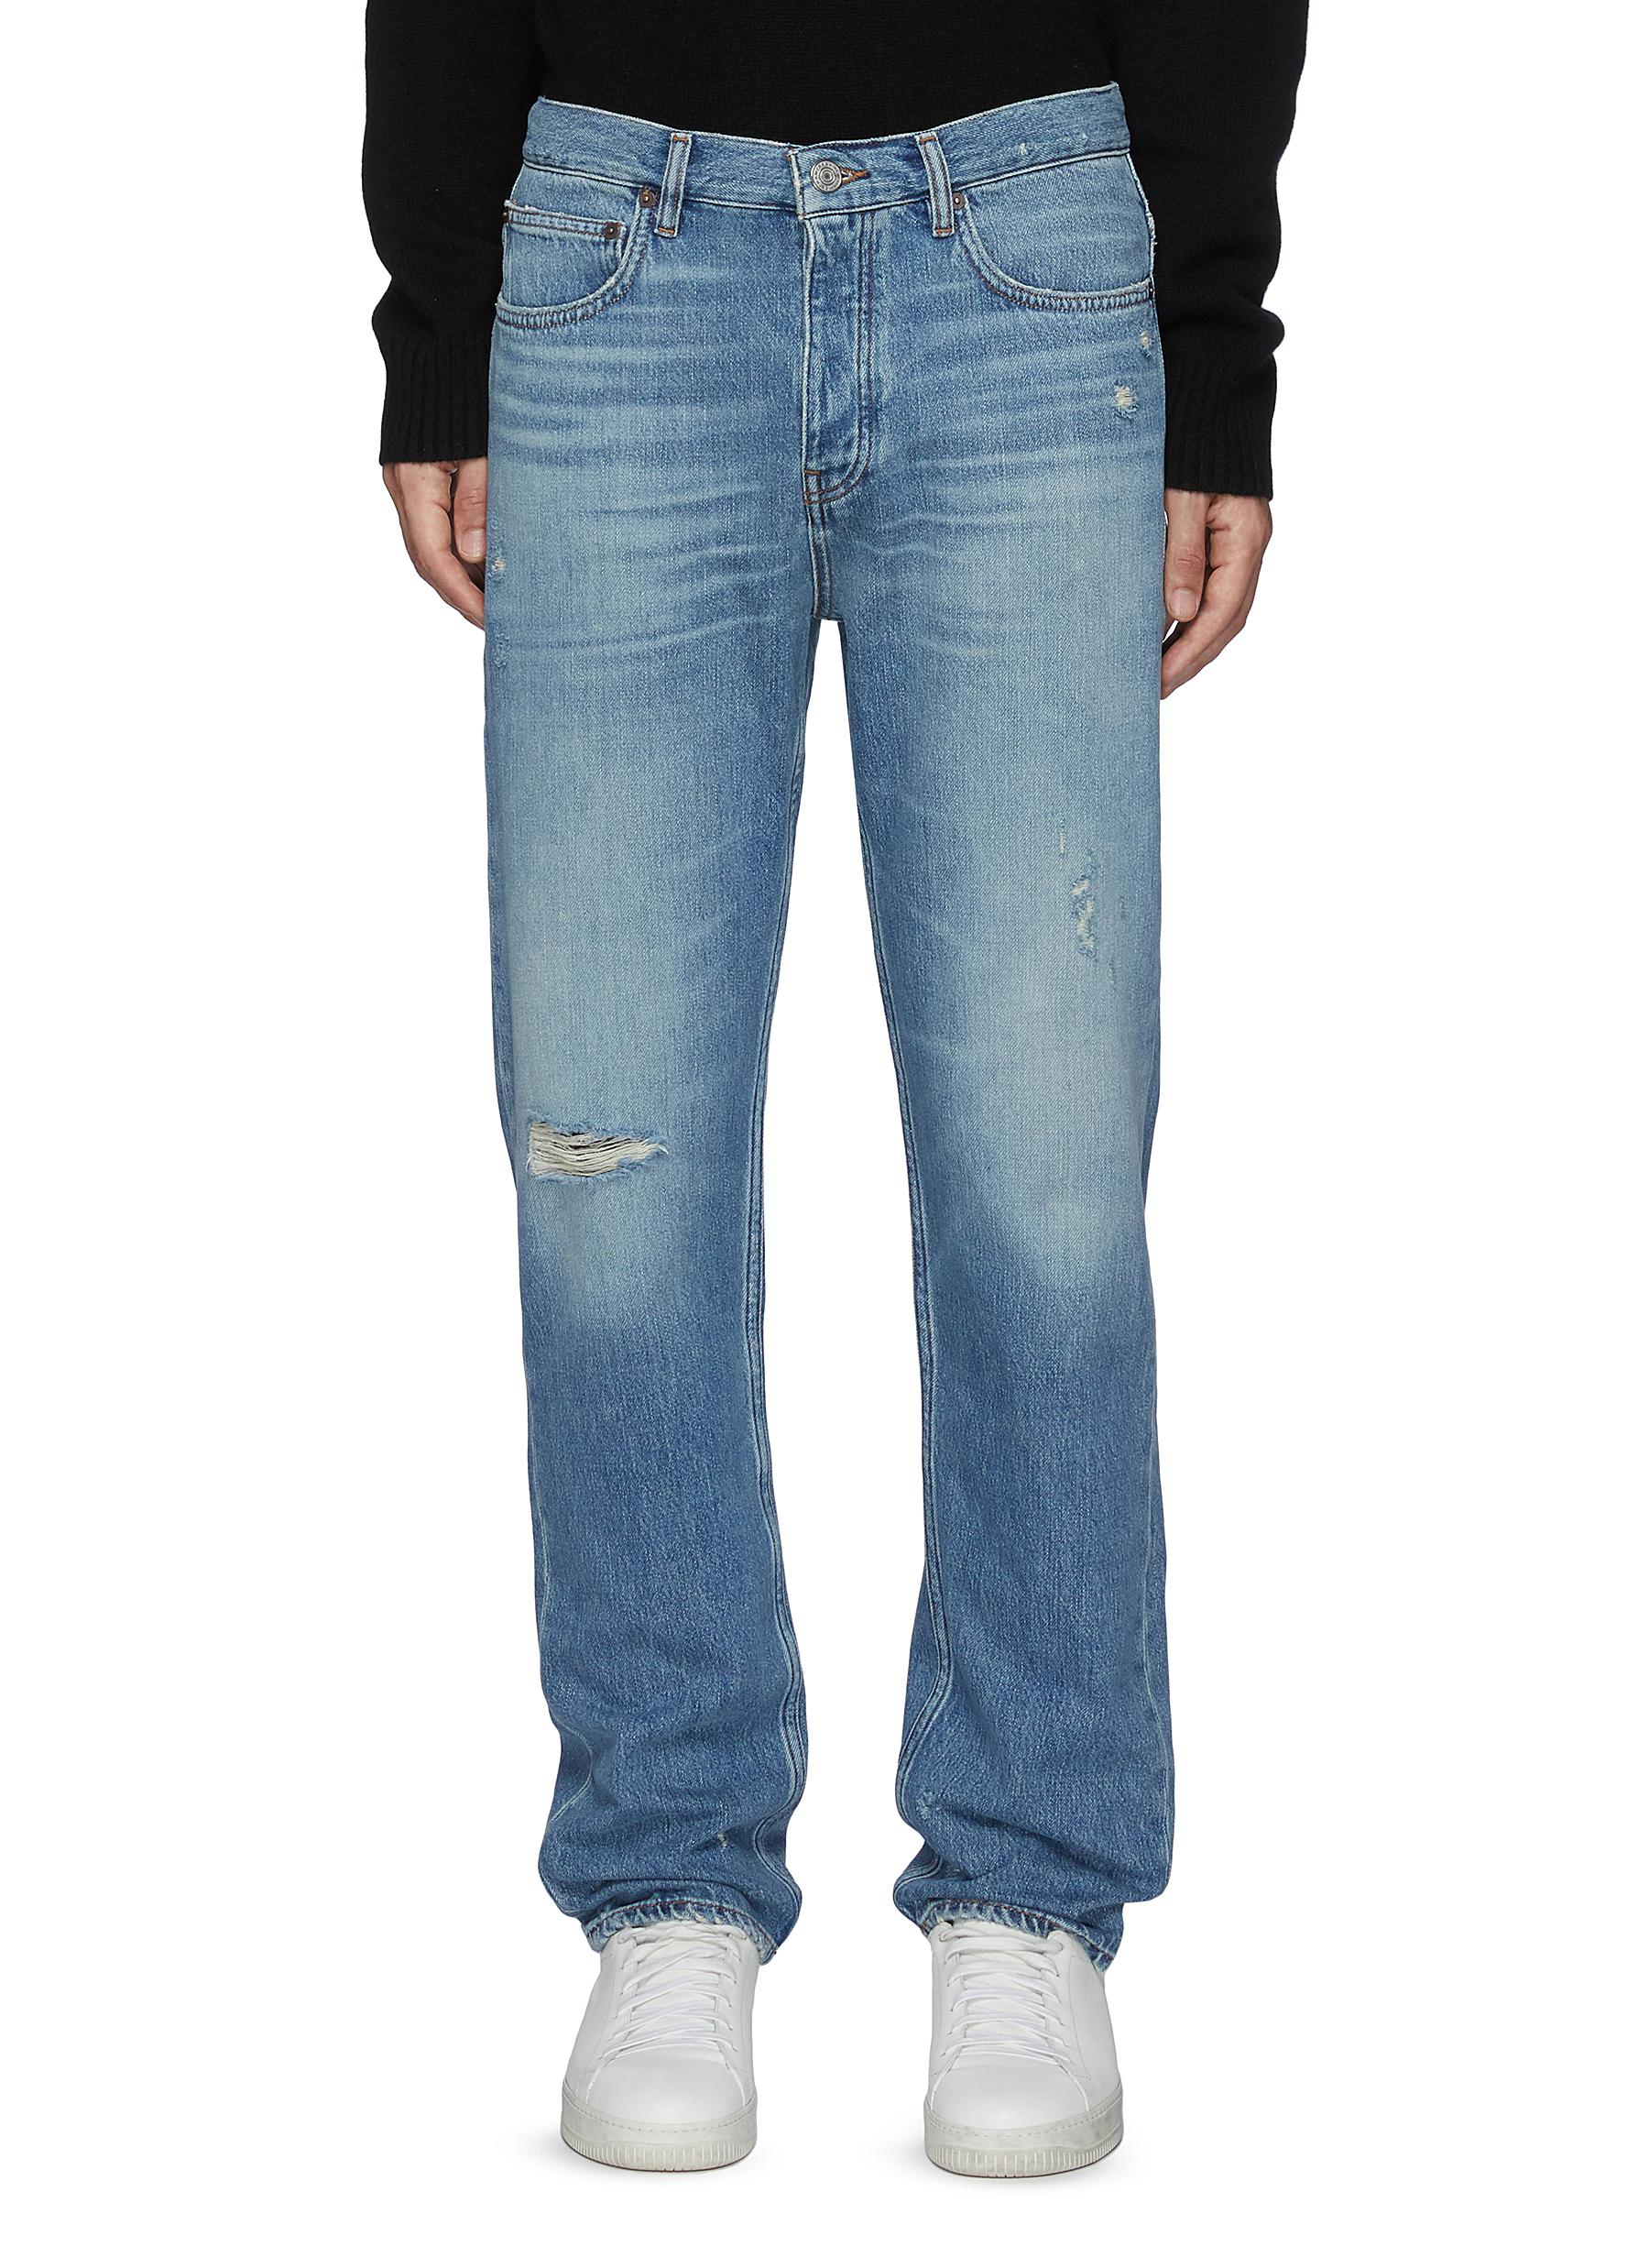 Vintage Distressed Straight Legged Med Wash Ripped Knee Jeans